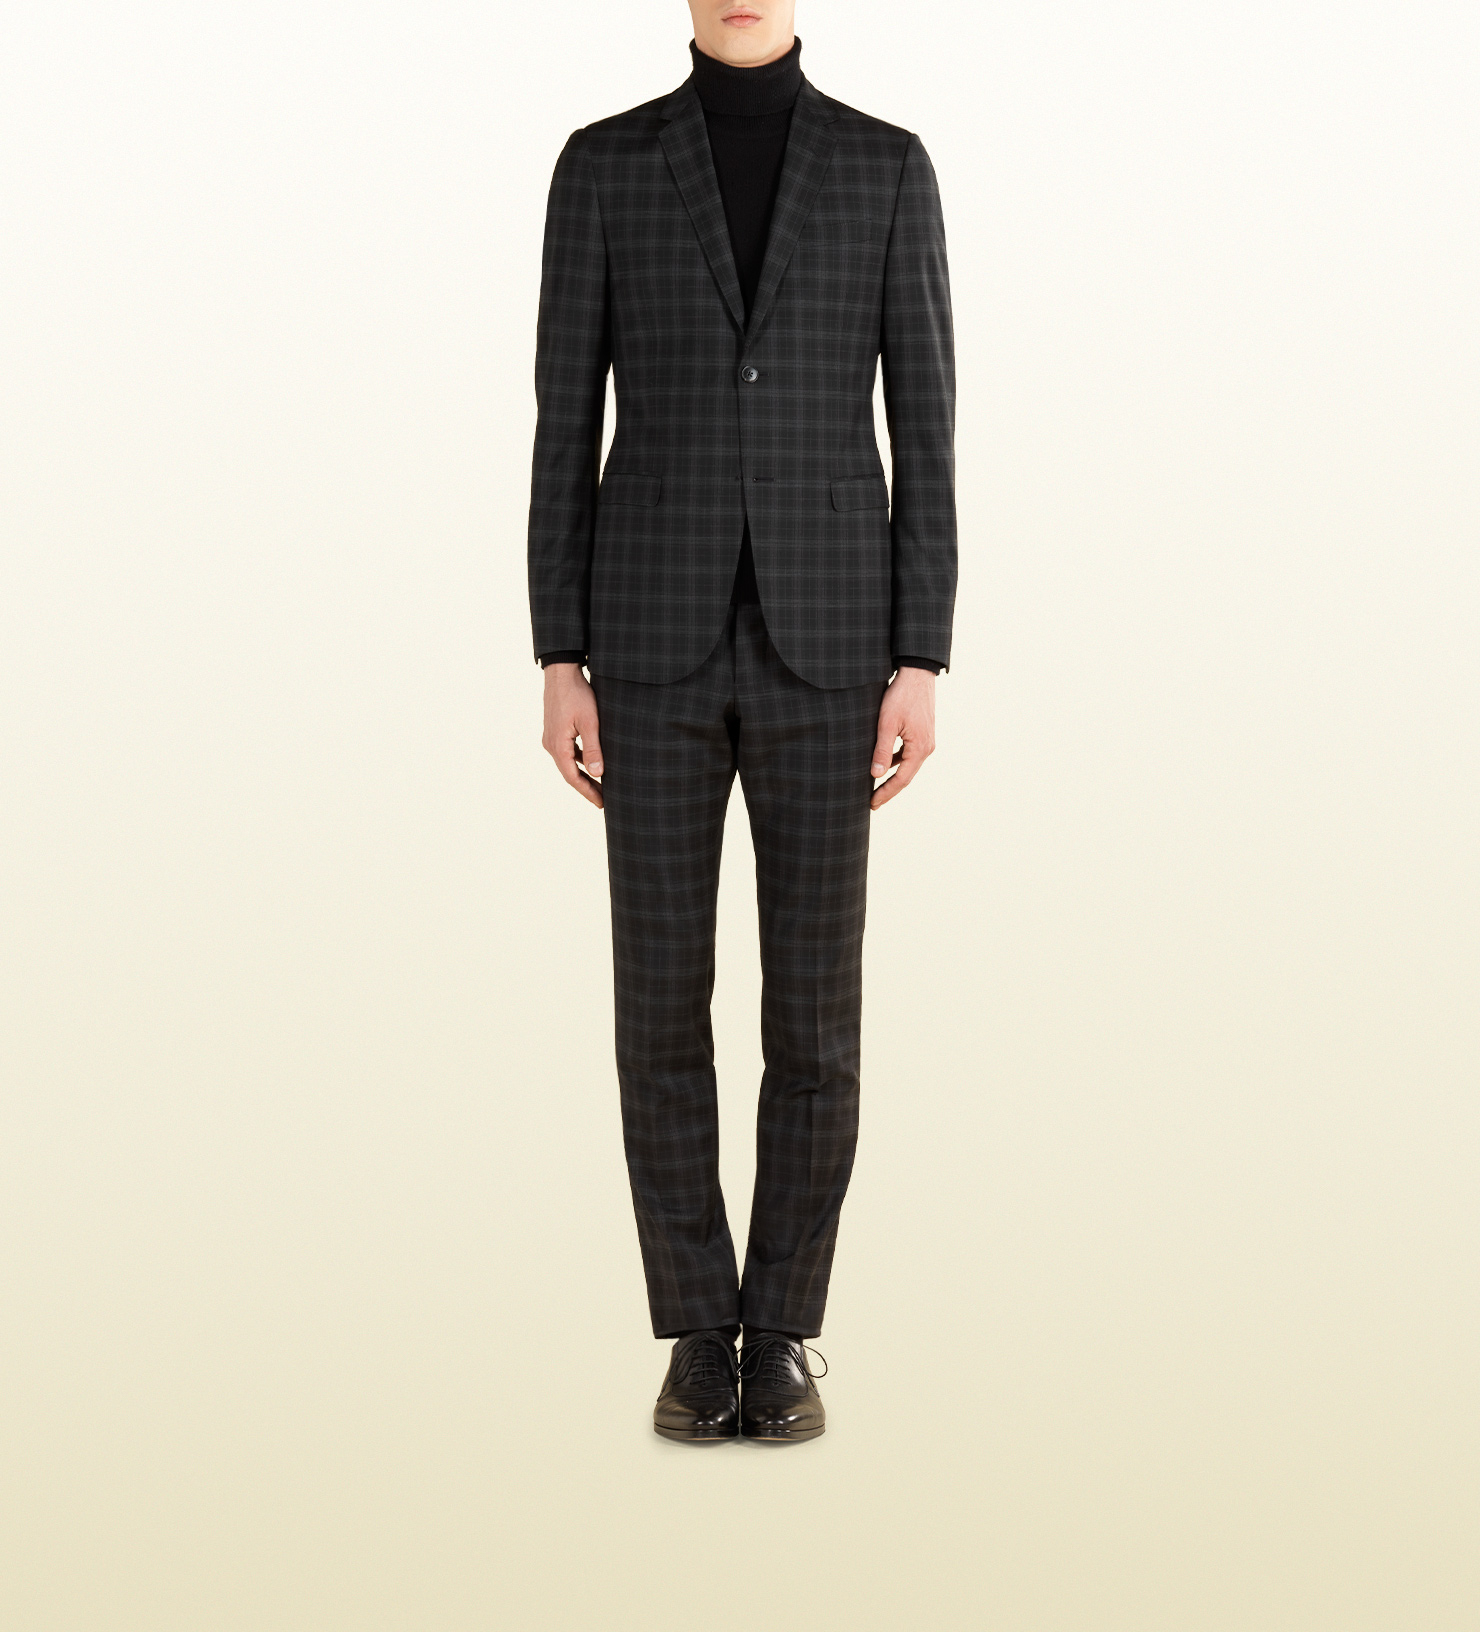 8f4a36080 Gucci Check Print Wool Dylan '60 Suit in Black for Men - Lyst